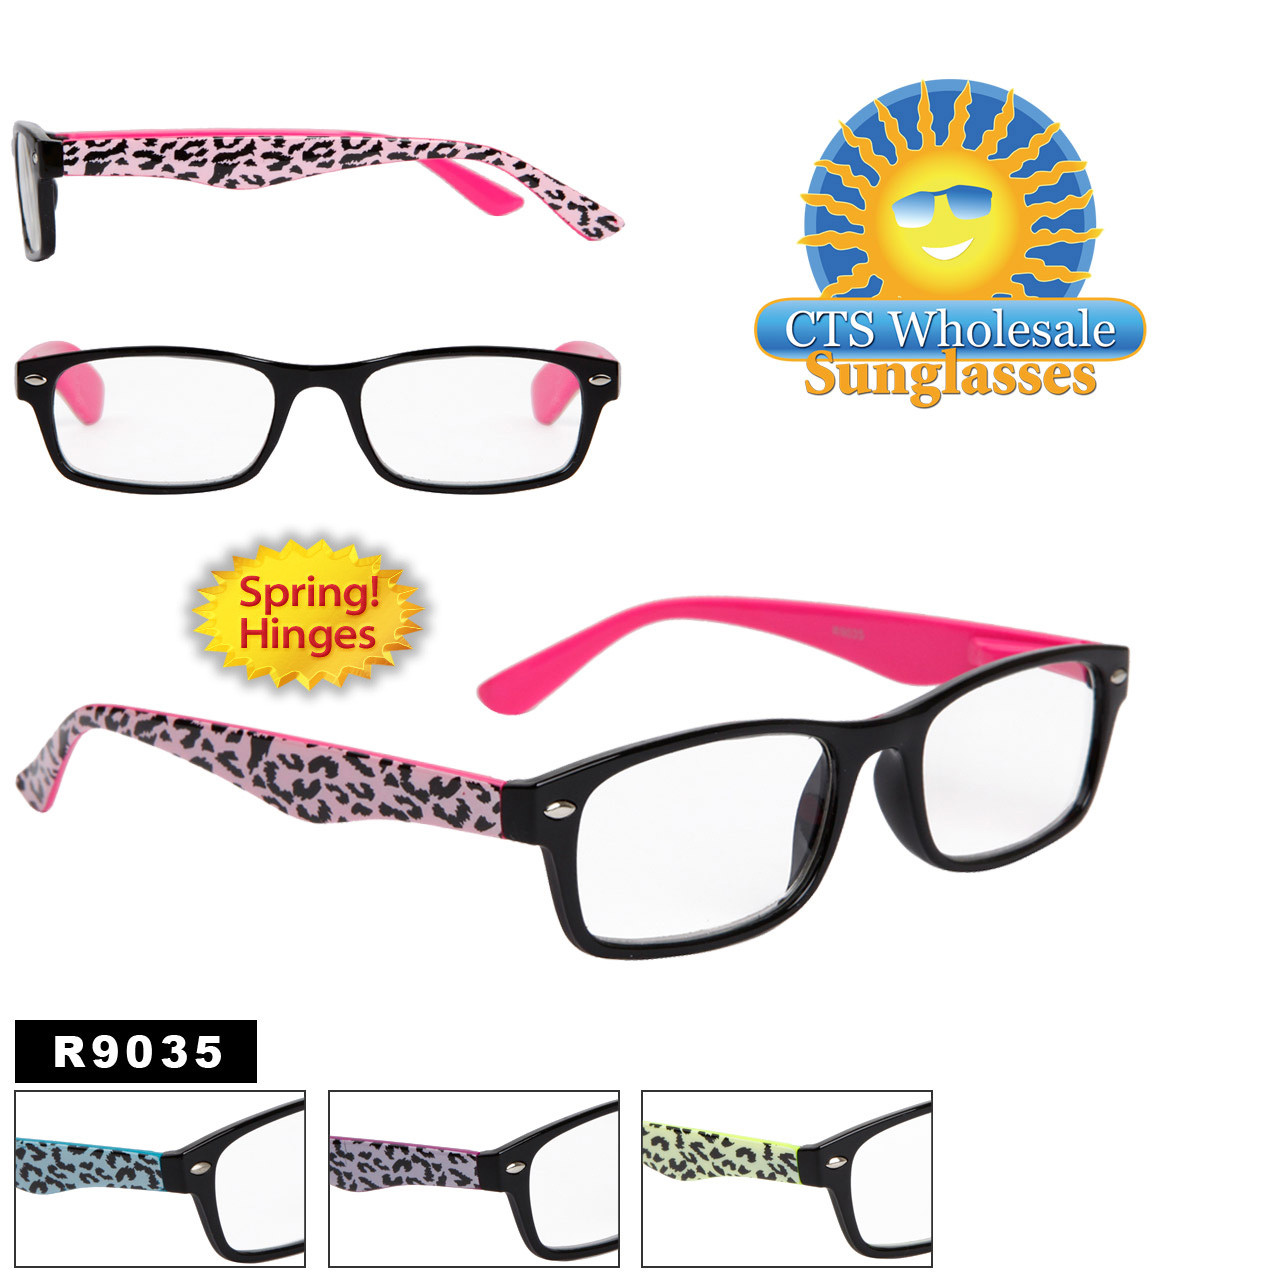 Leopard Print Reading Glasses R9035